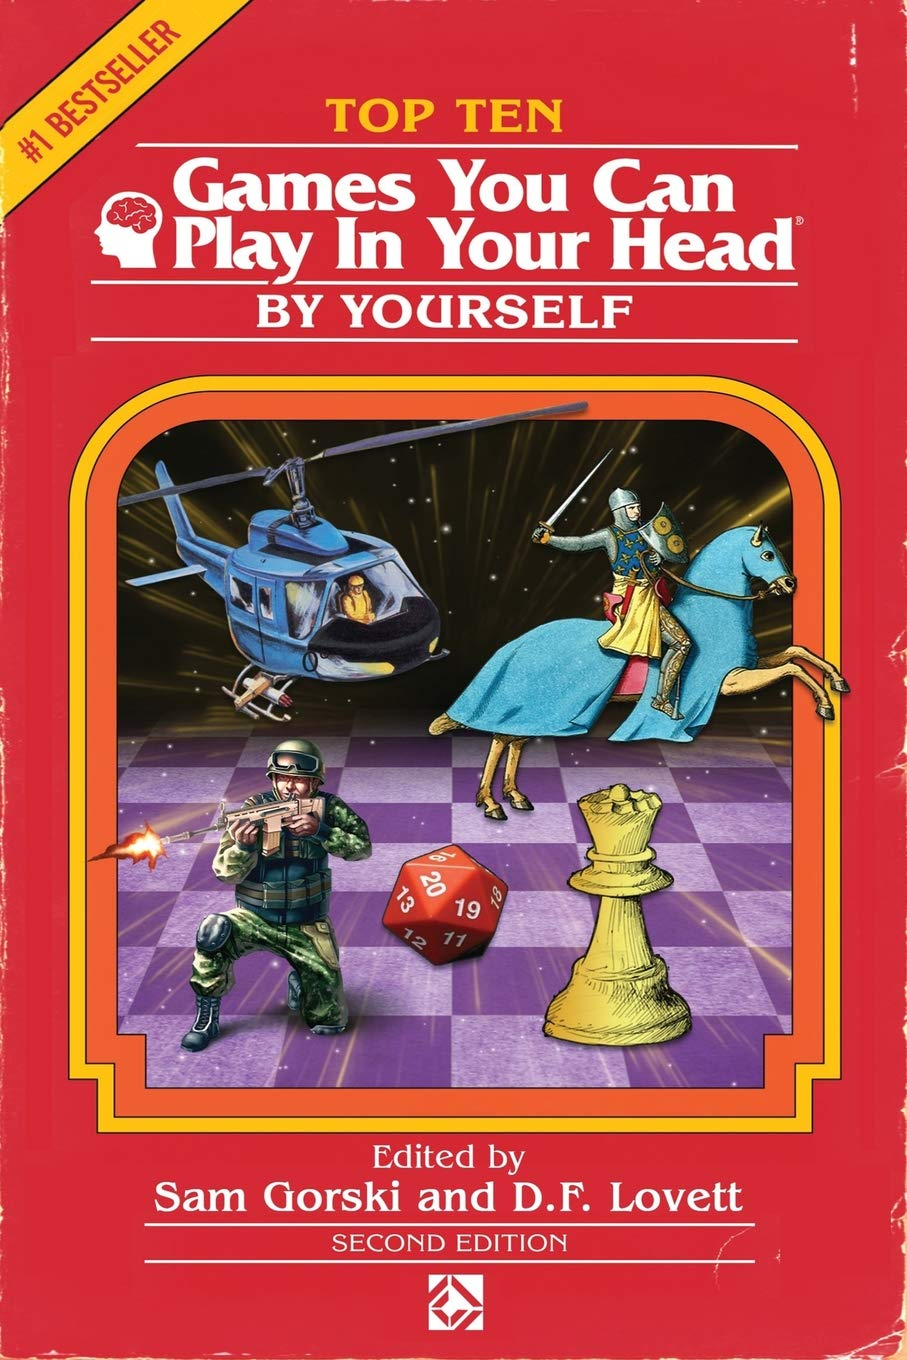 Top 10 Games You Can Play In Your Head, By Yourself: Second Edition por J. Theophrastus Bartholomew